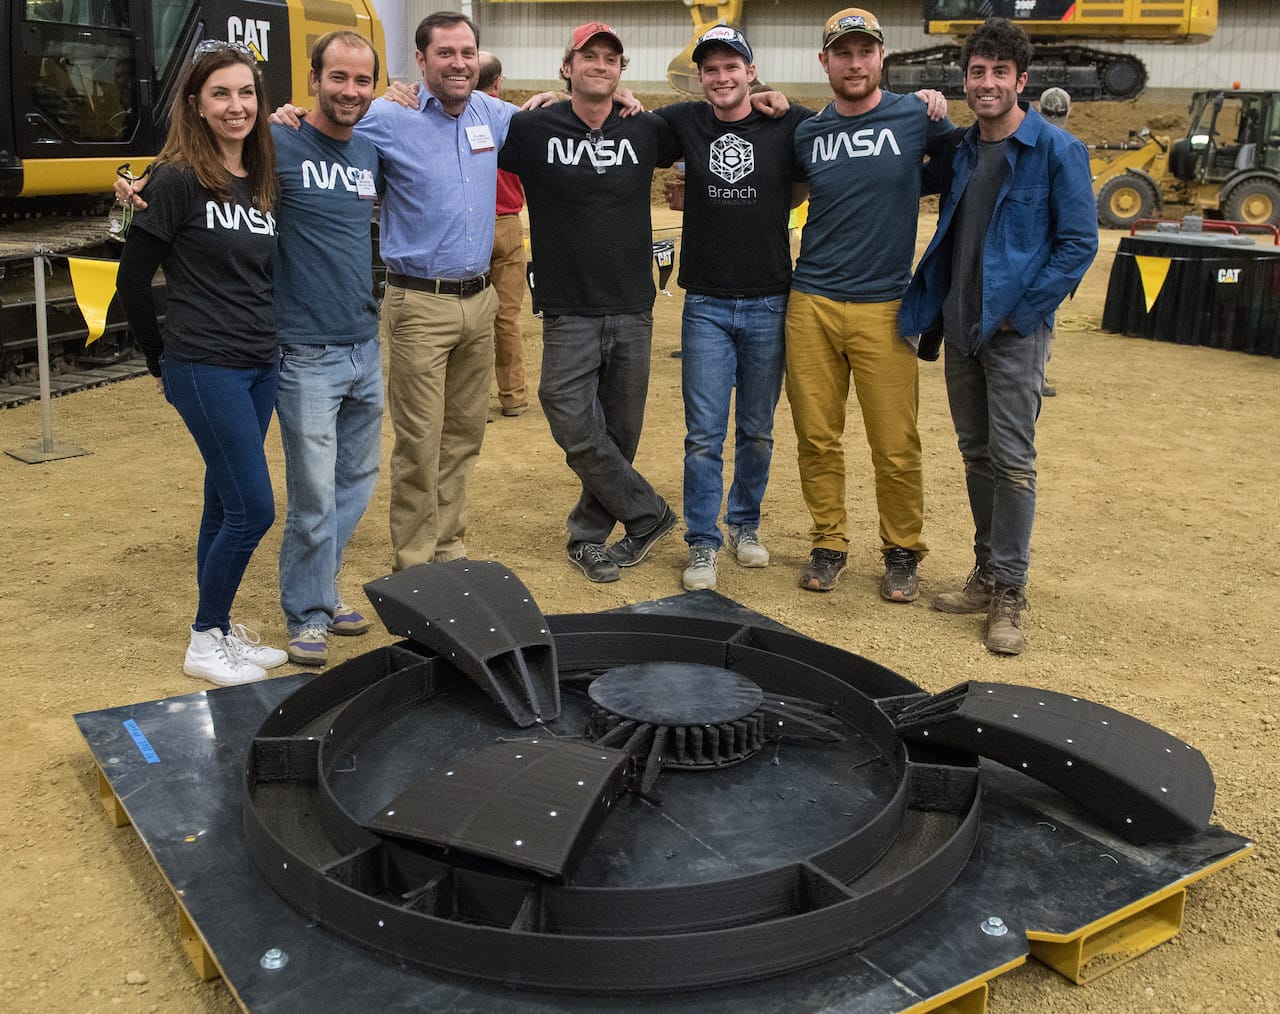 NASA's 3D Printed Challenge Reaches Prize Stage